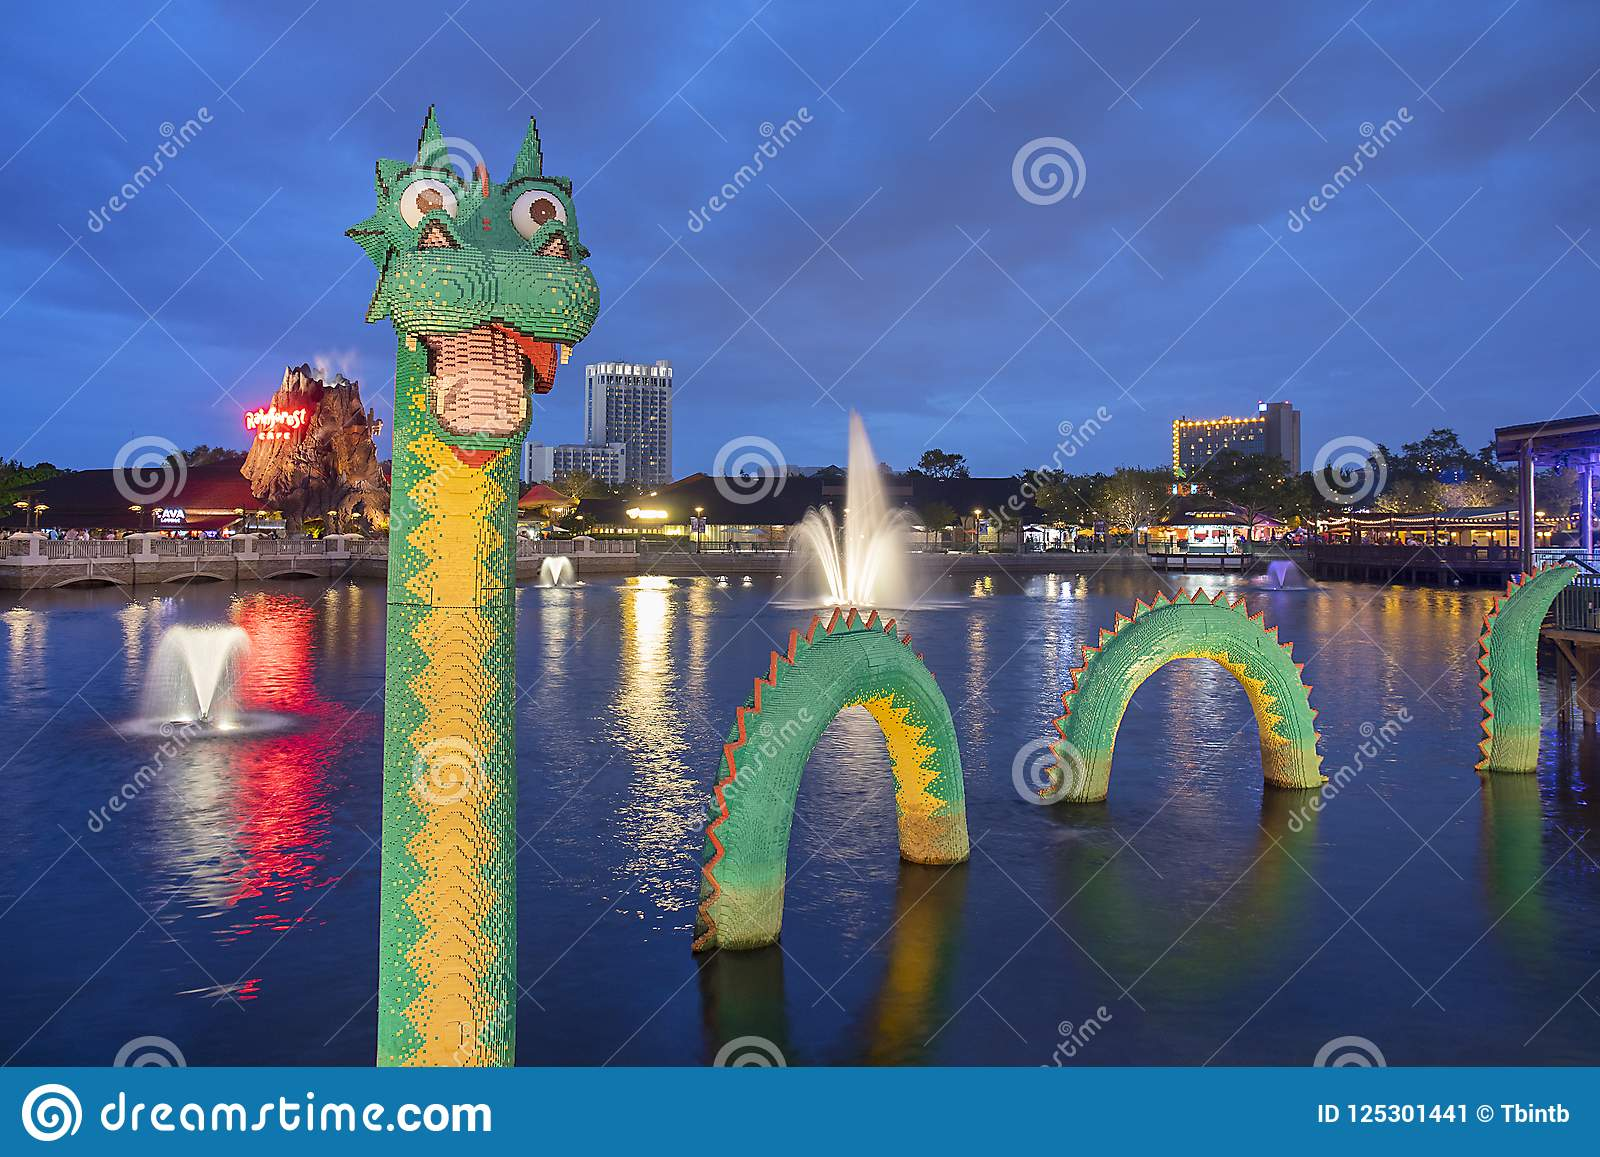 Brickley las primaveras de Lego Water Dragon At Disney en la noche